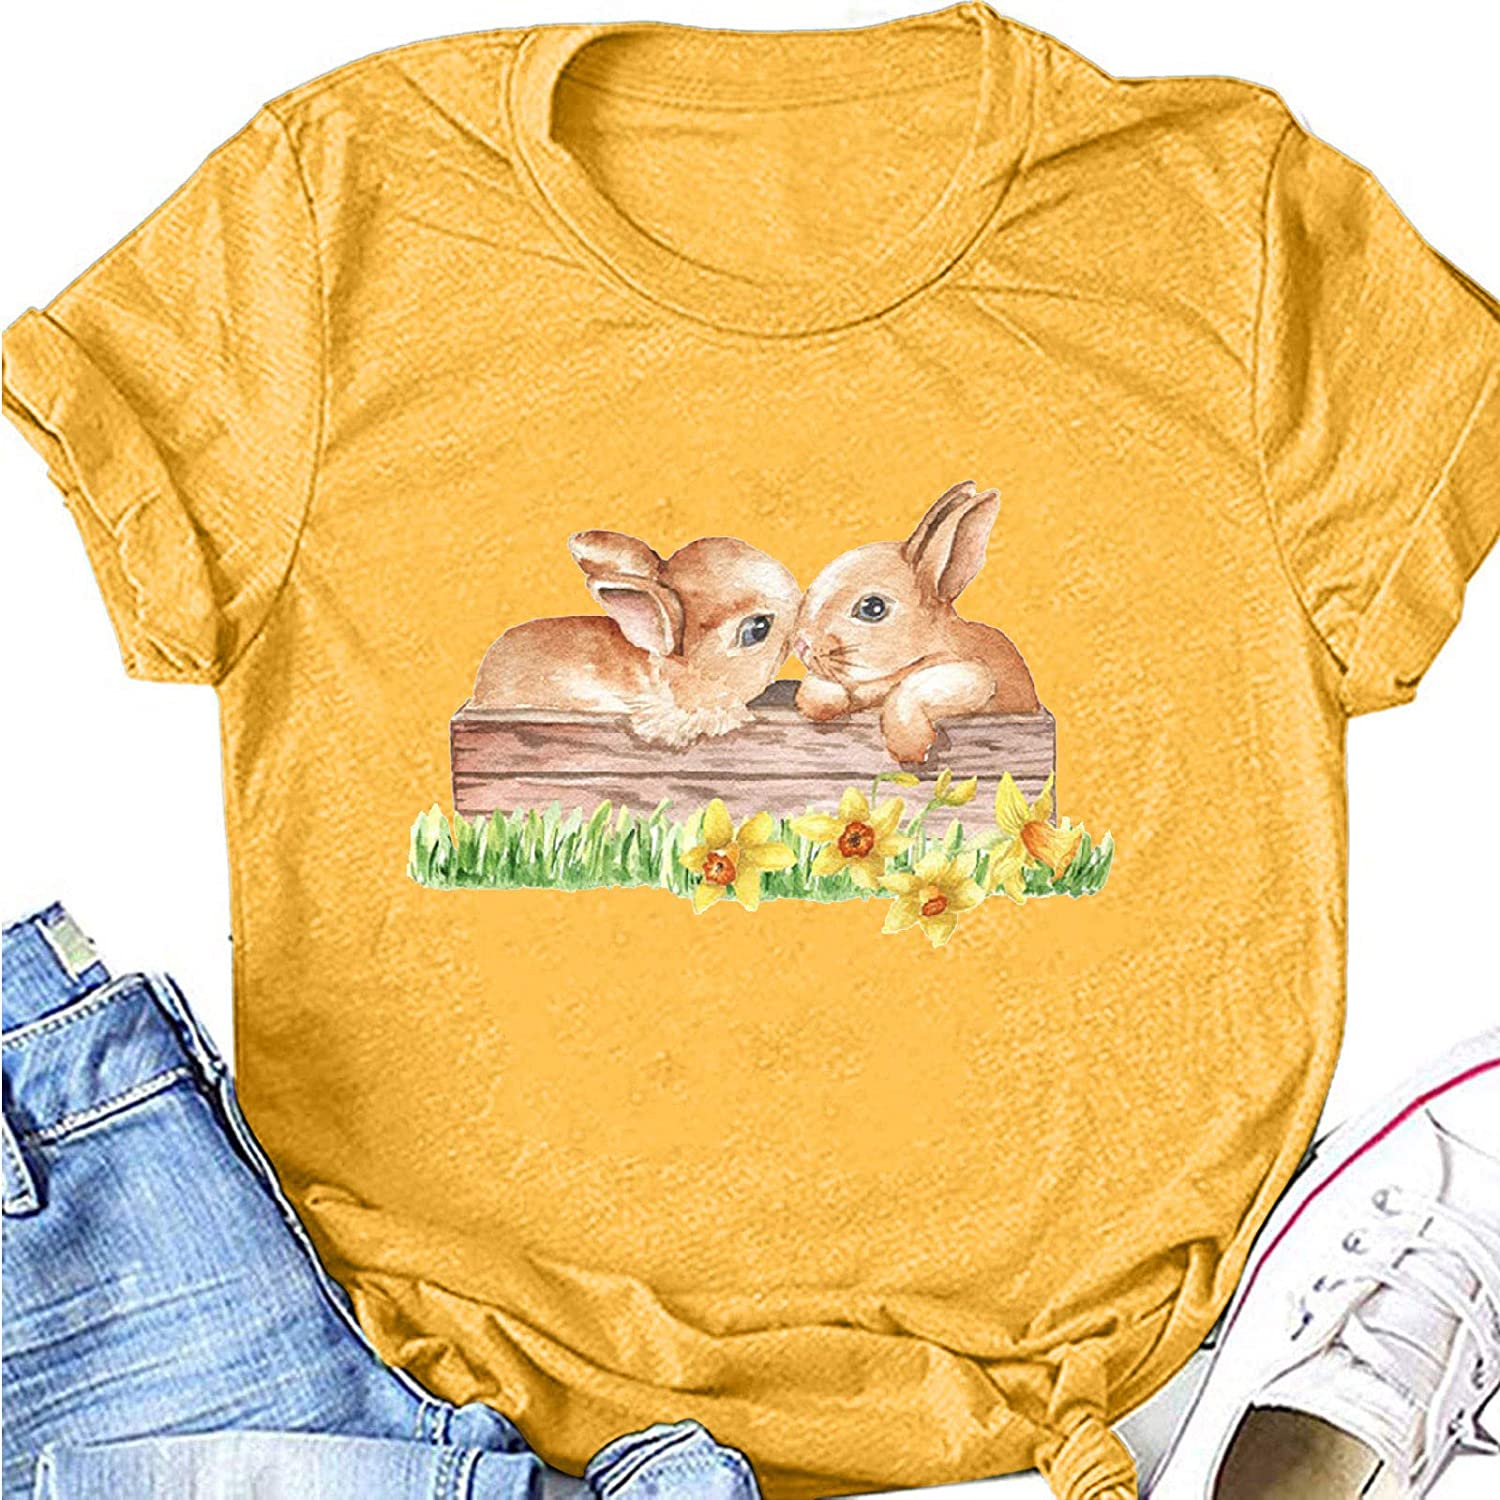 Short Sleeve Easter Shirts for Women,Casual Funny Easter Bunny Printed Short Sleeve Shirts Pullover Tops